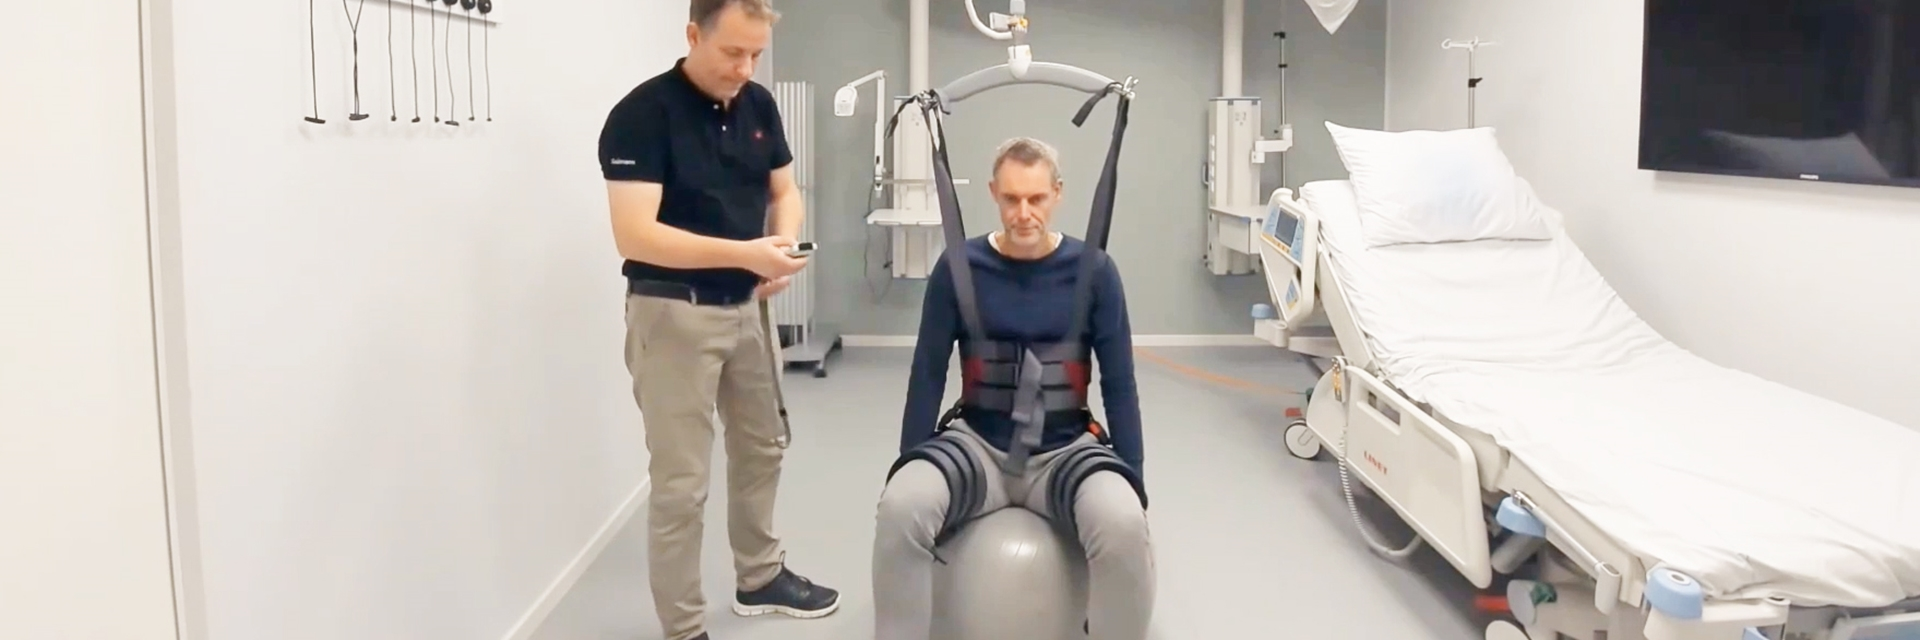 Trainer module - Positioning lock - Balance on therapy ball